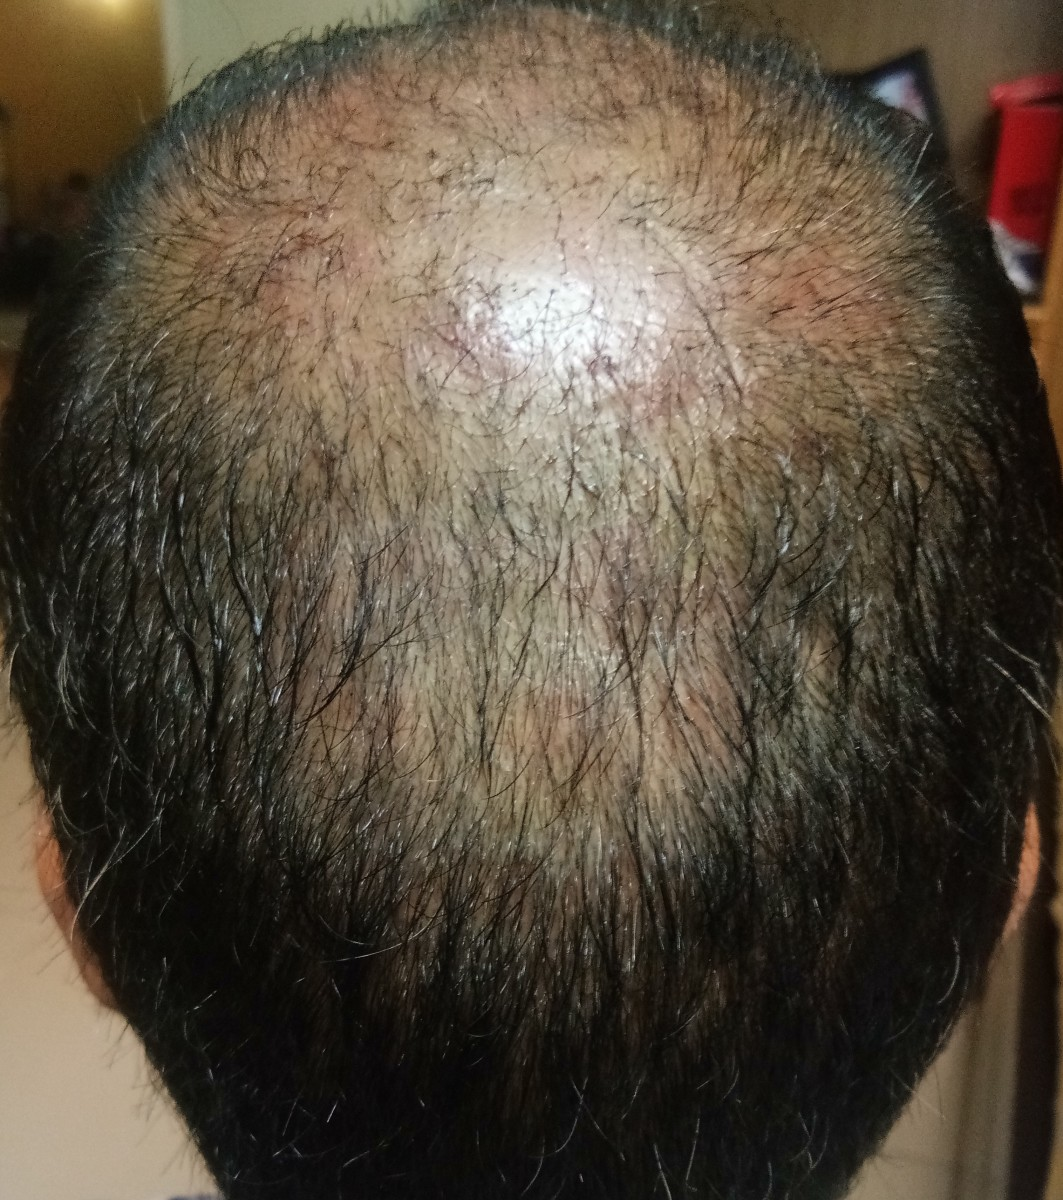 Vertex Area - After PRP treatment